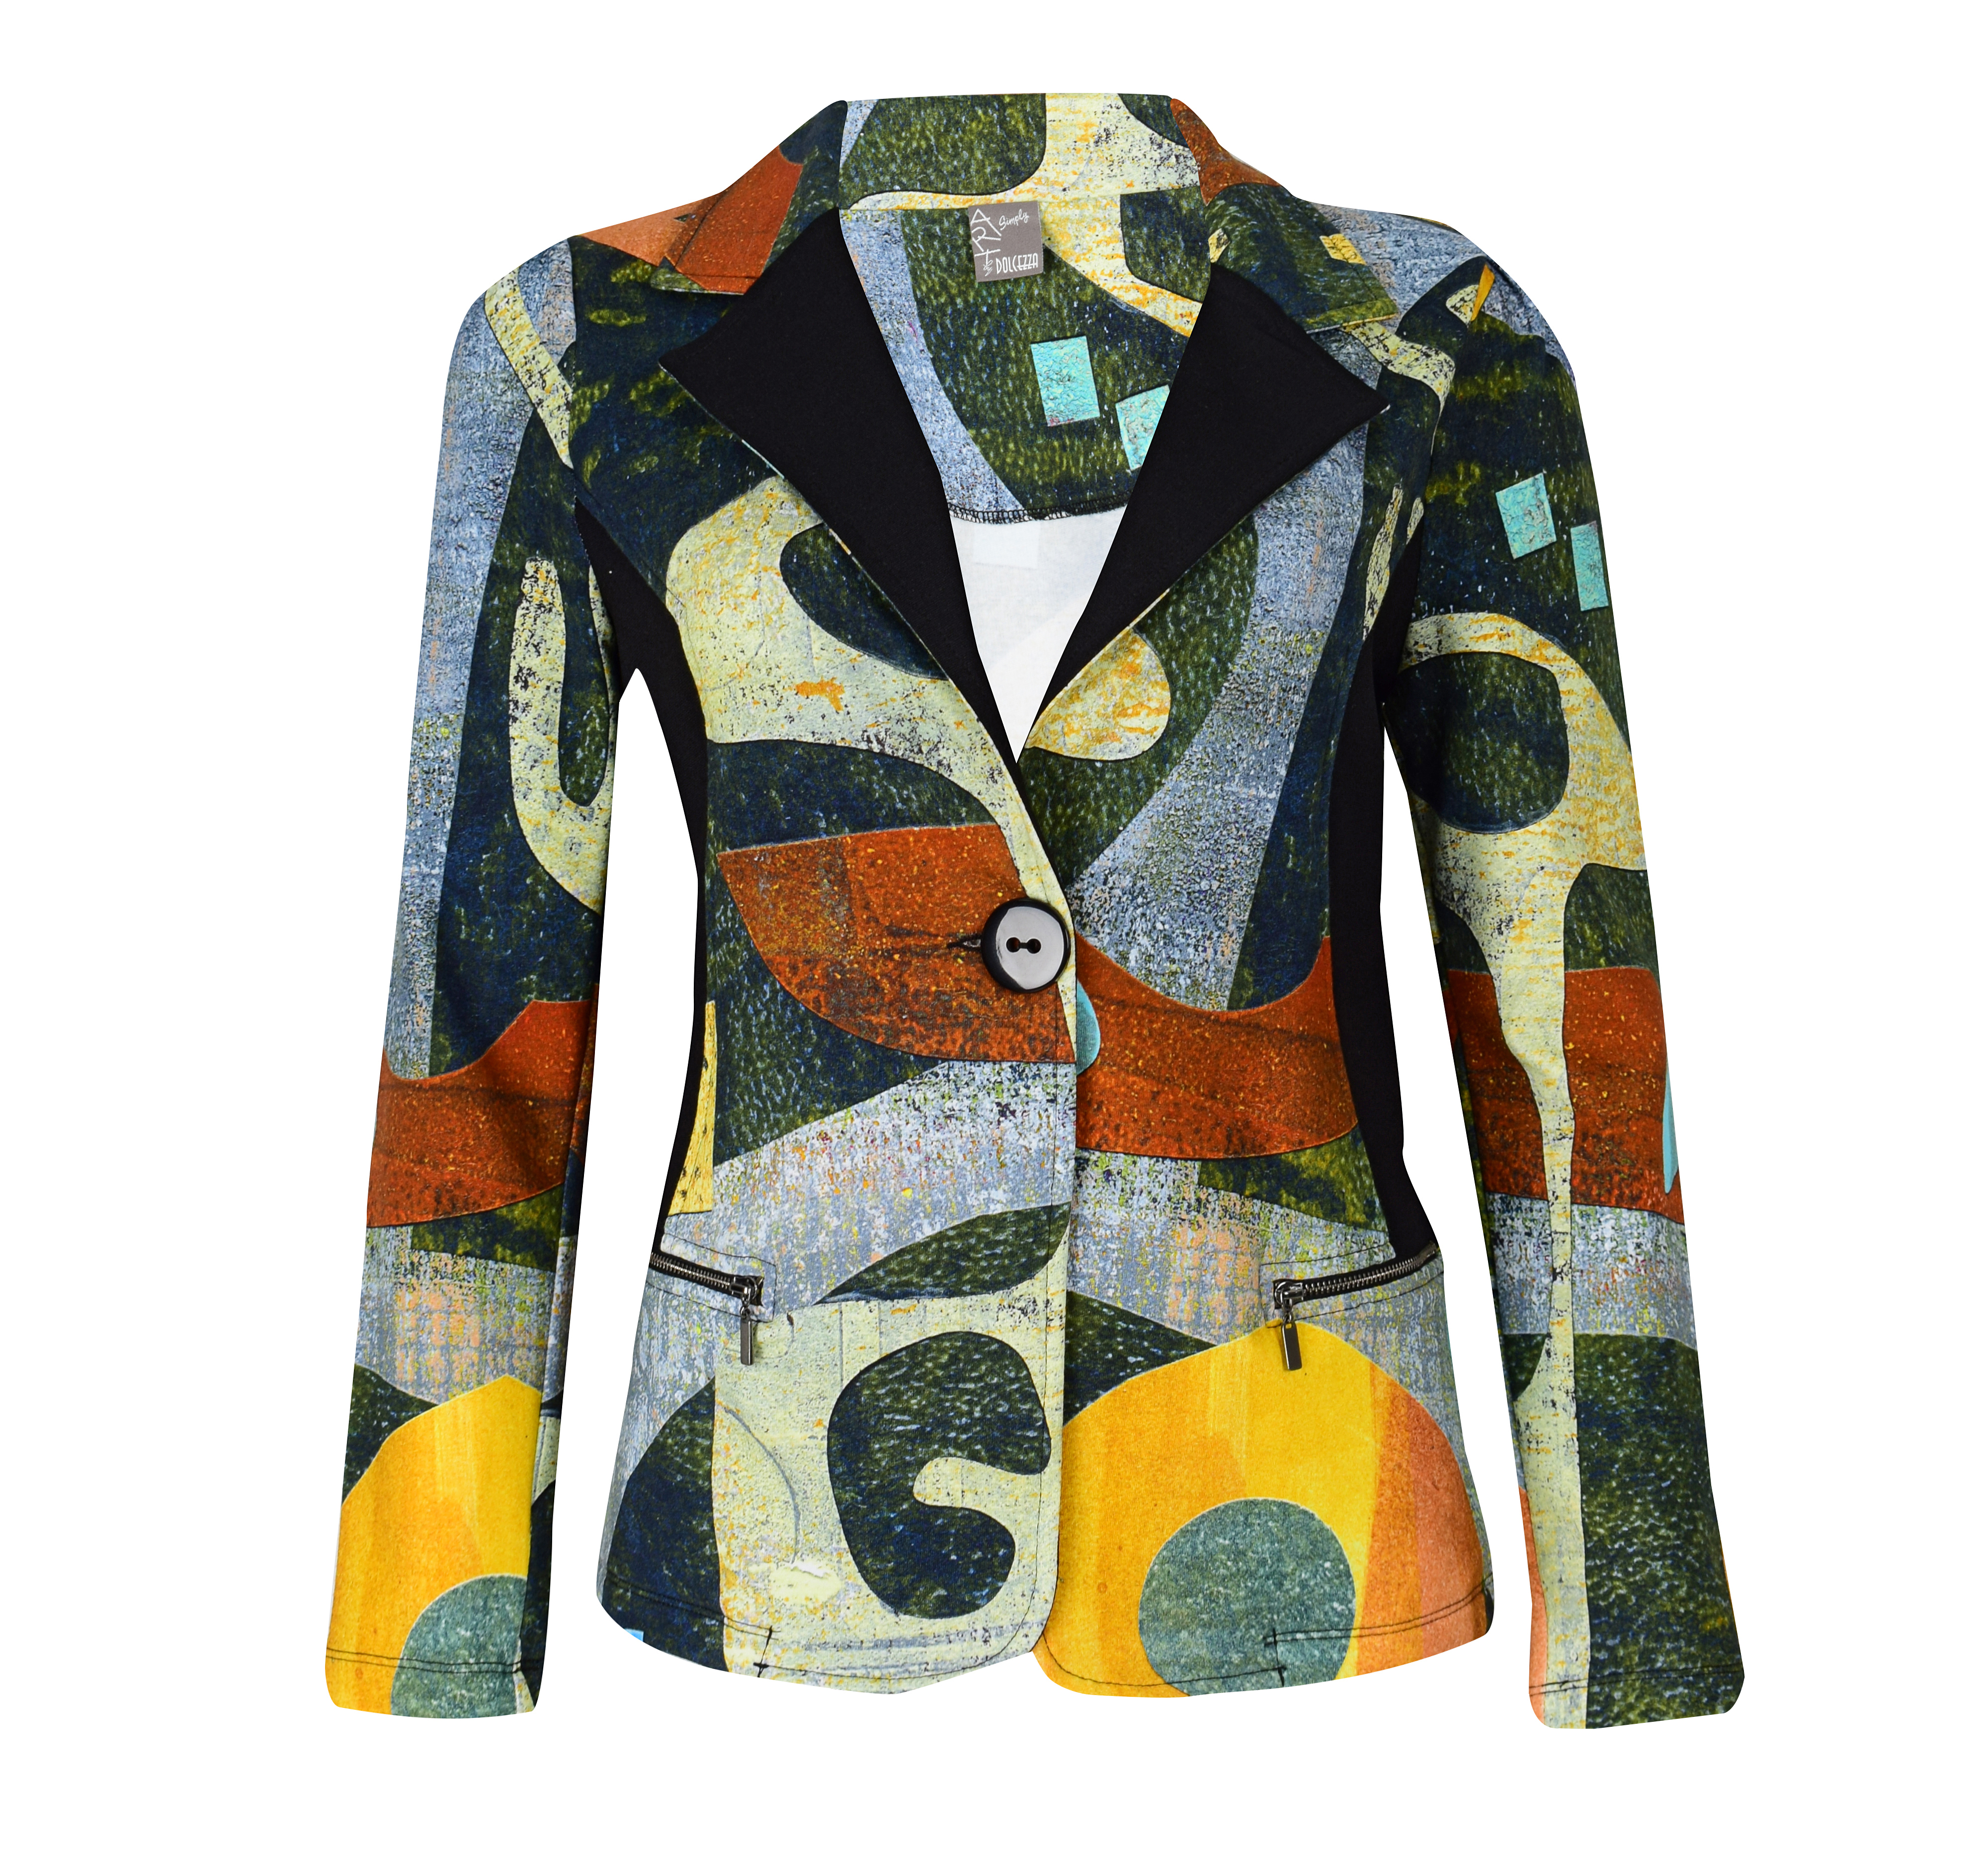 Simply Art Dolcezza: Small Collage Of Eclecticism Abstract Art Blazer SOLD OUT Dolcezza_SimplyArt_59746_N